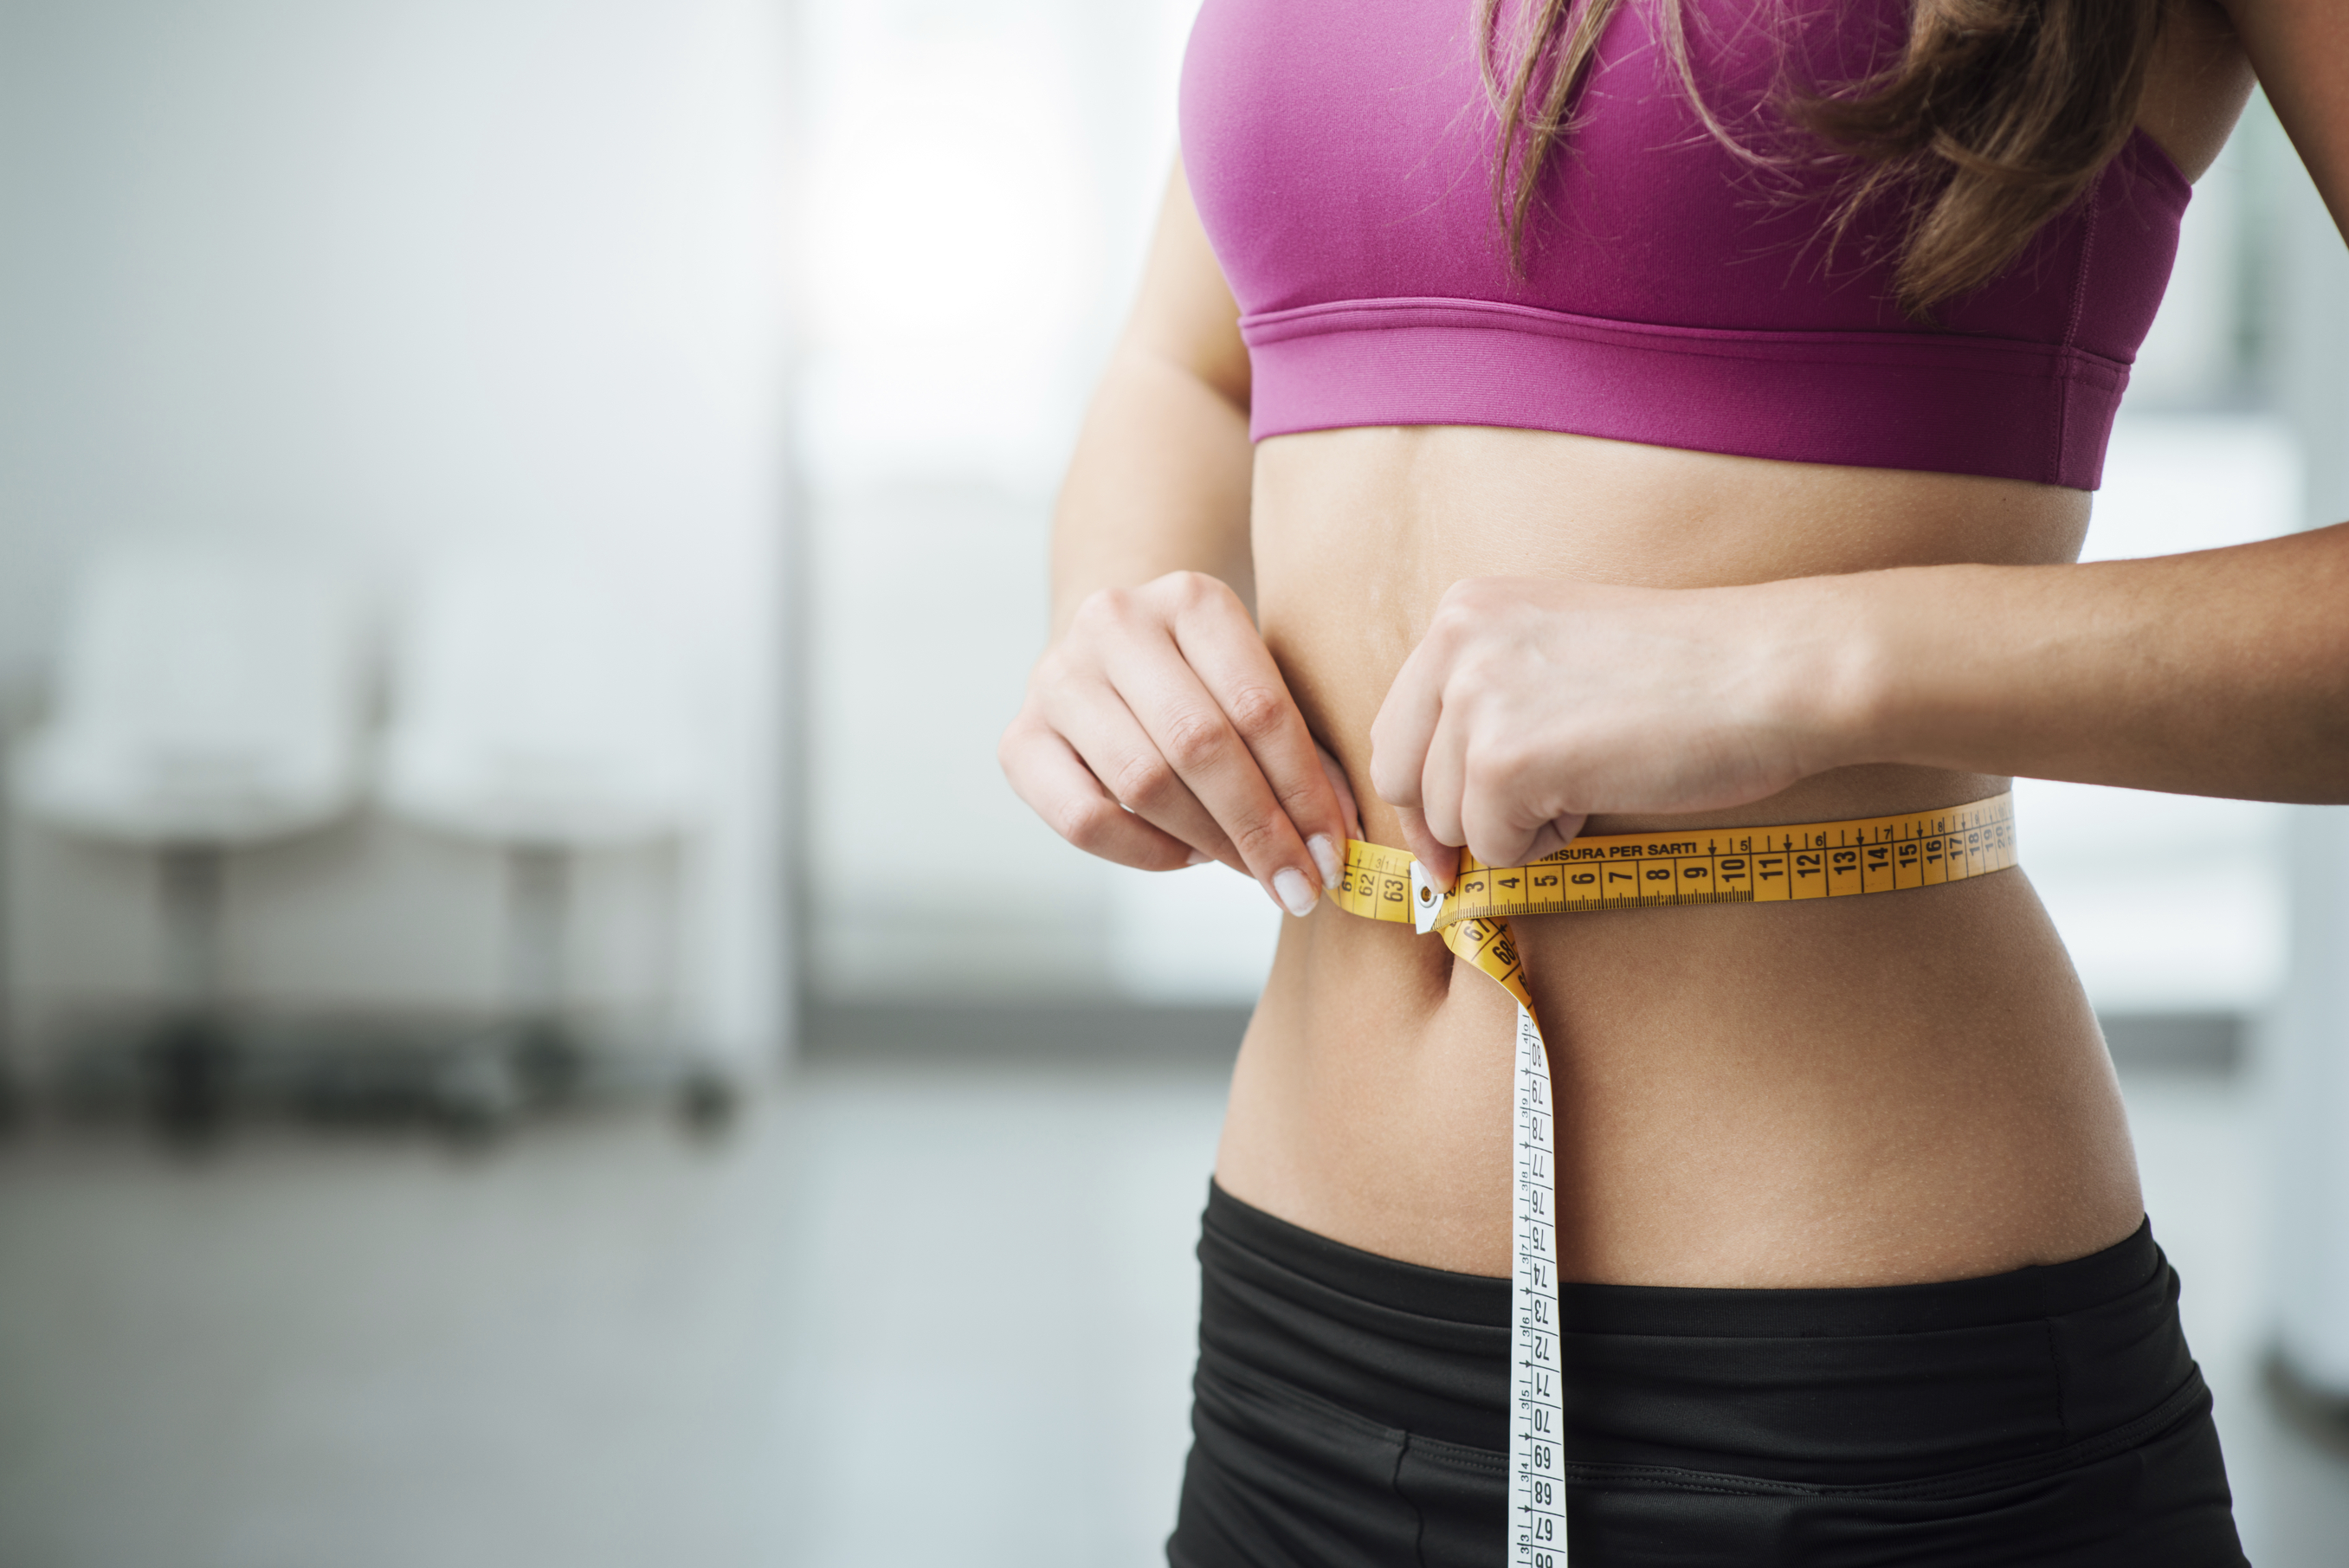 Sexy Body and Healthy Mind with Weight Loss